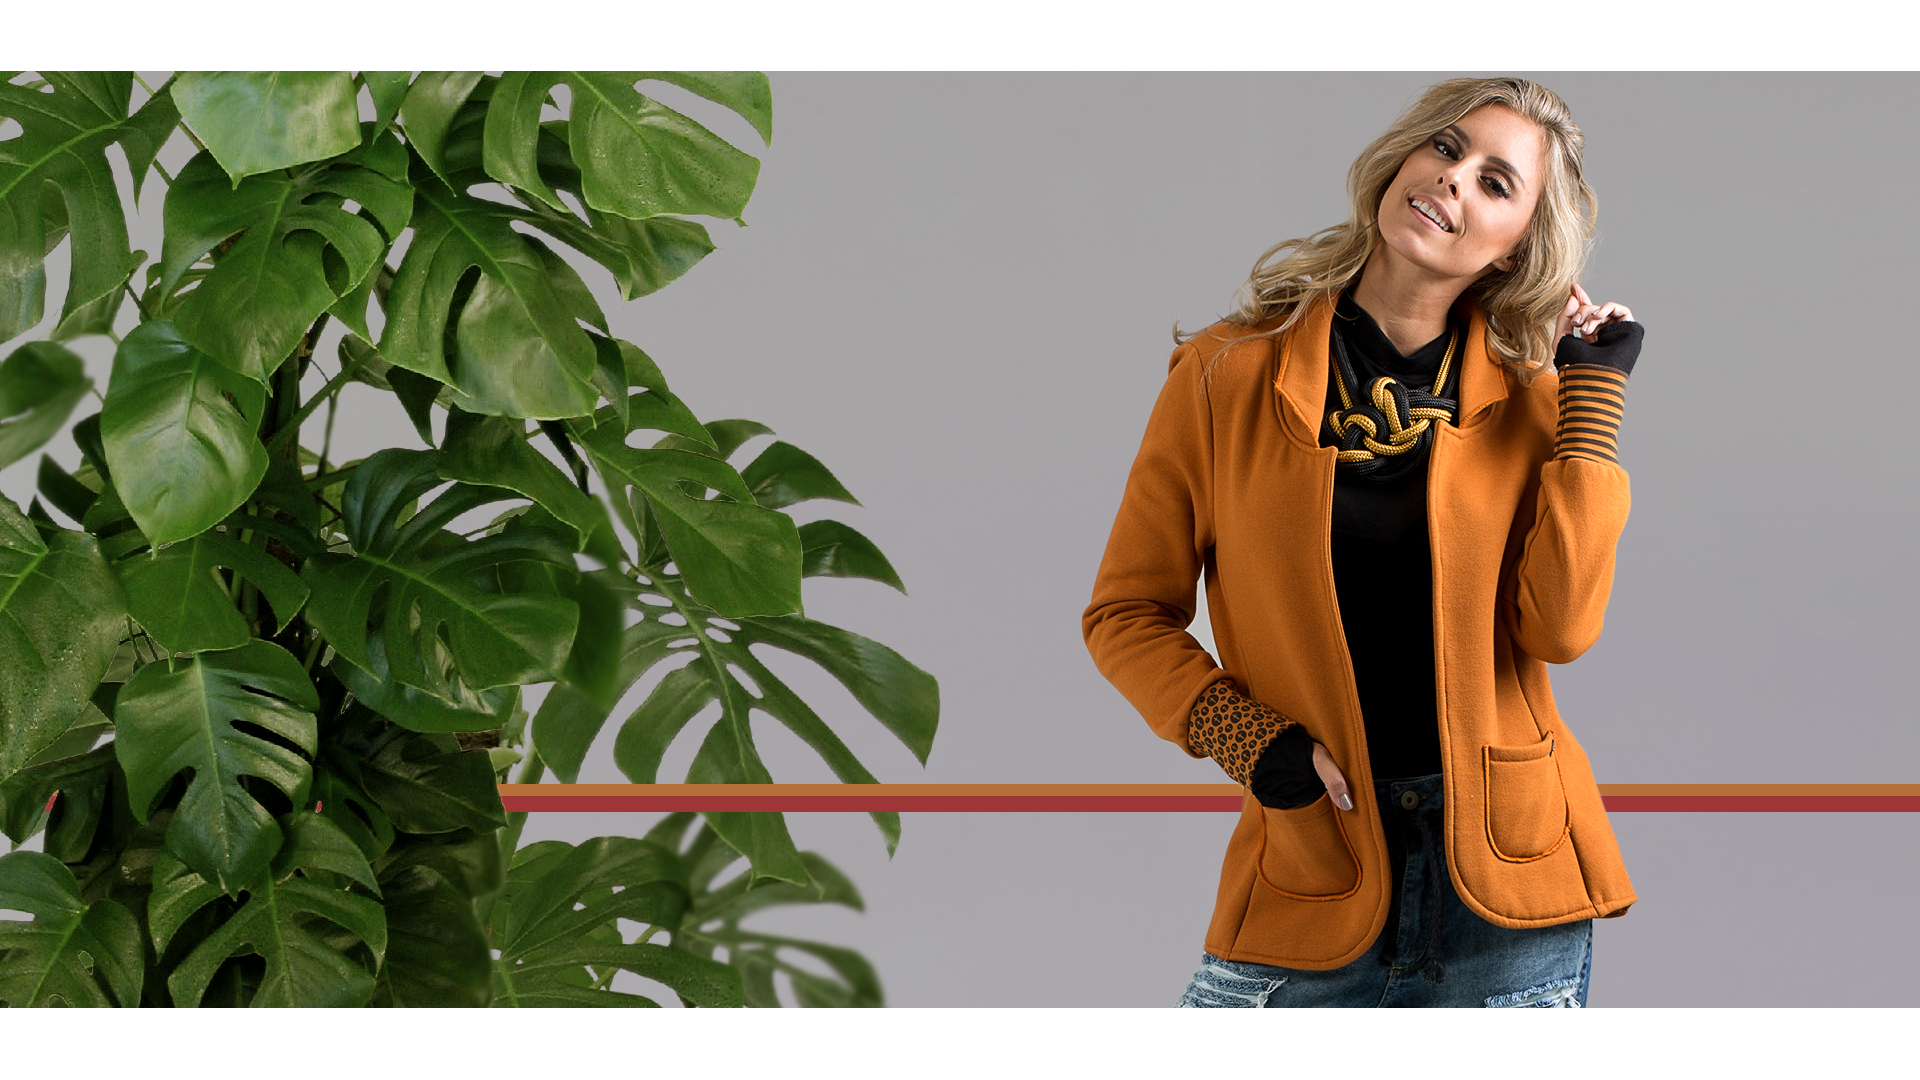 stacena lookbook inverno 2017